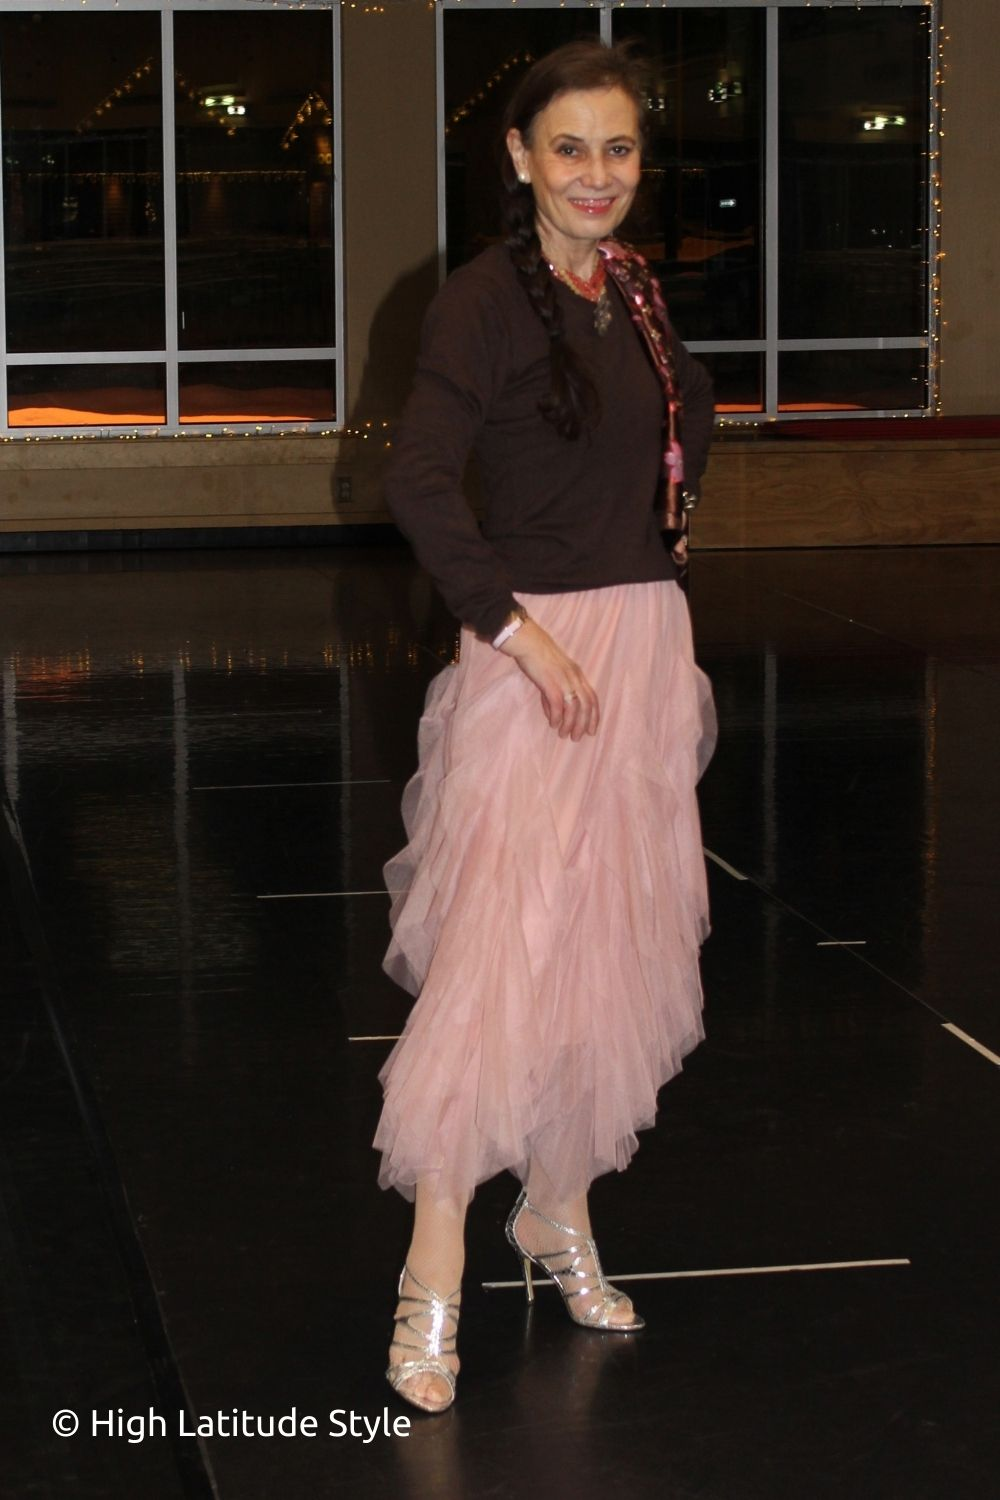 style book author in pink tulle skirt, braun sweater, matching scarf, silver sandals